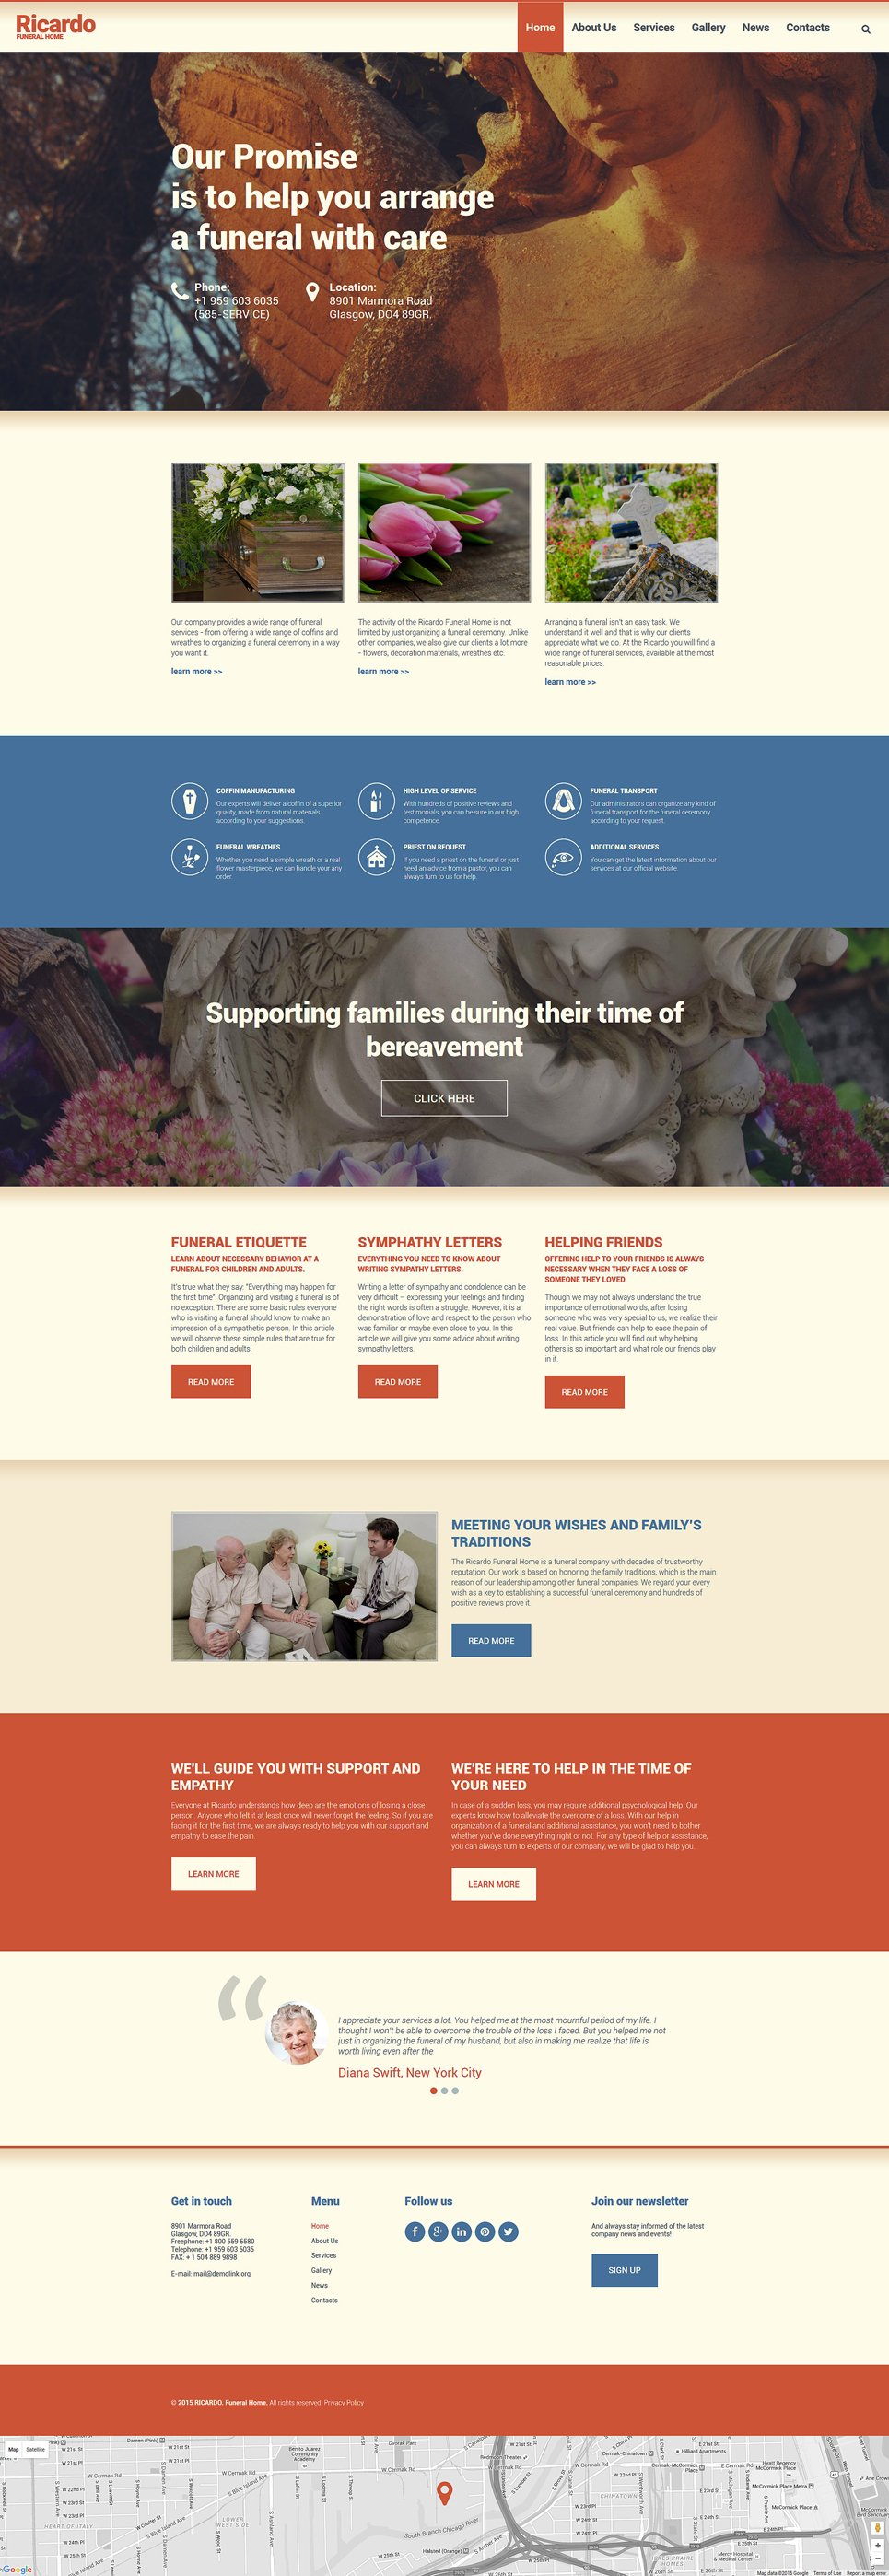 Funeral services drupal template for Drupal 404 template